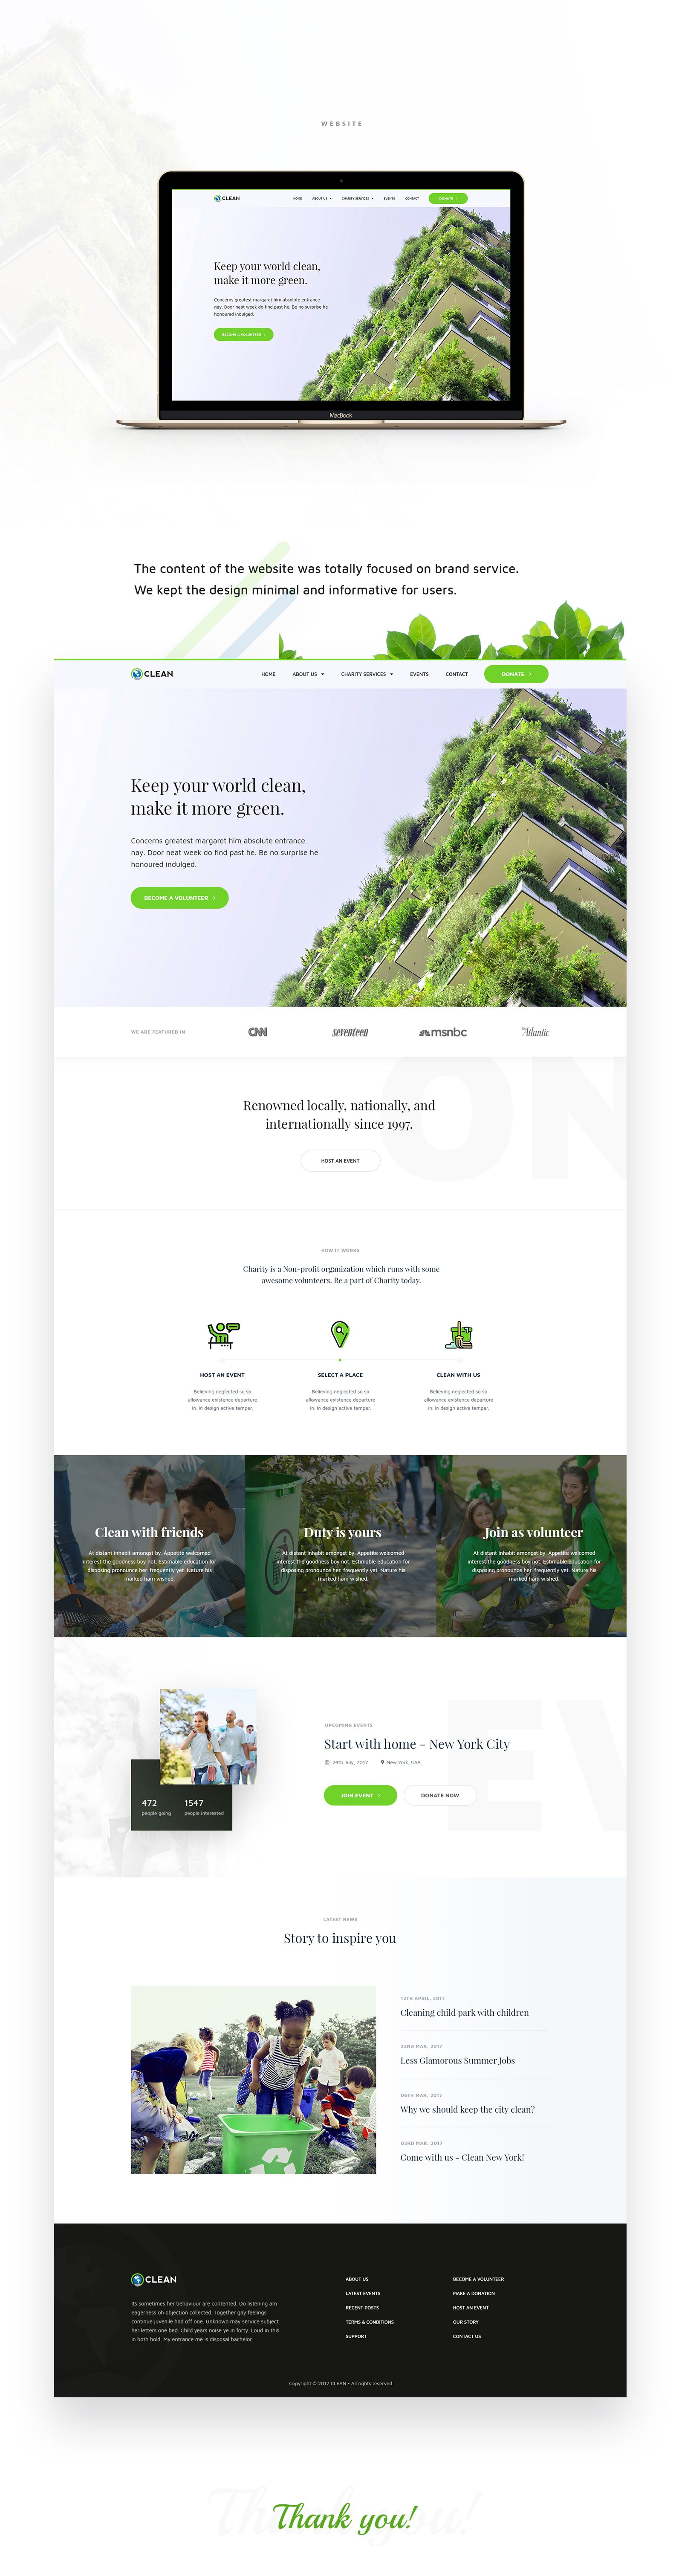 Clean Is A Non Profit Organization Based On Usa Who Helps The People To Clean Their City And Town The Branding Website Design Website Branding Website Design